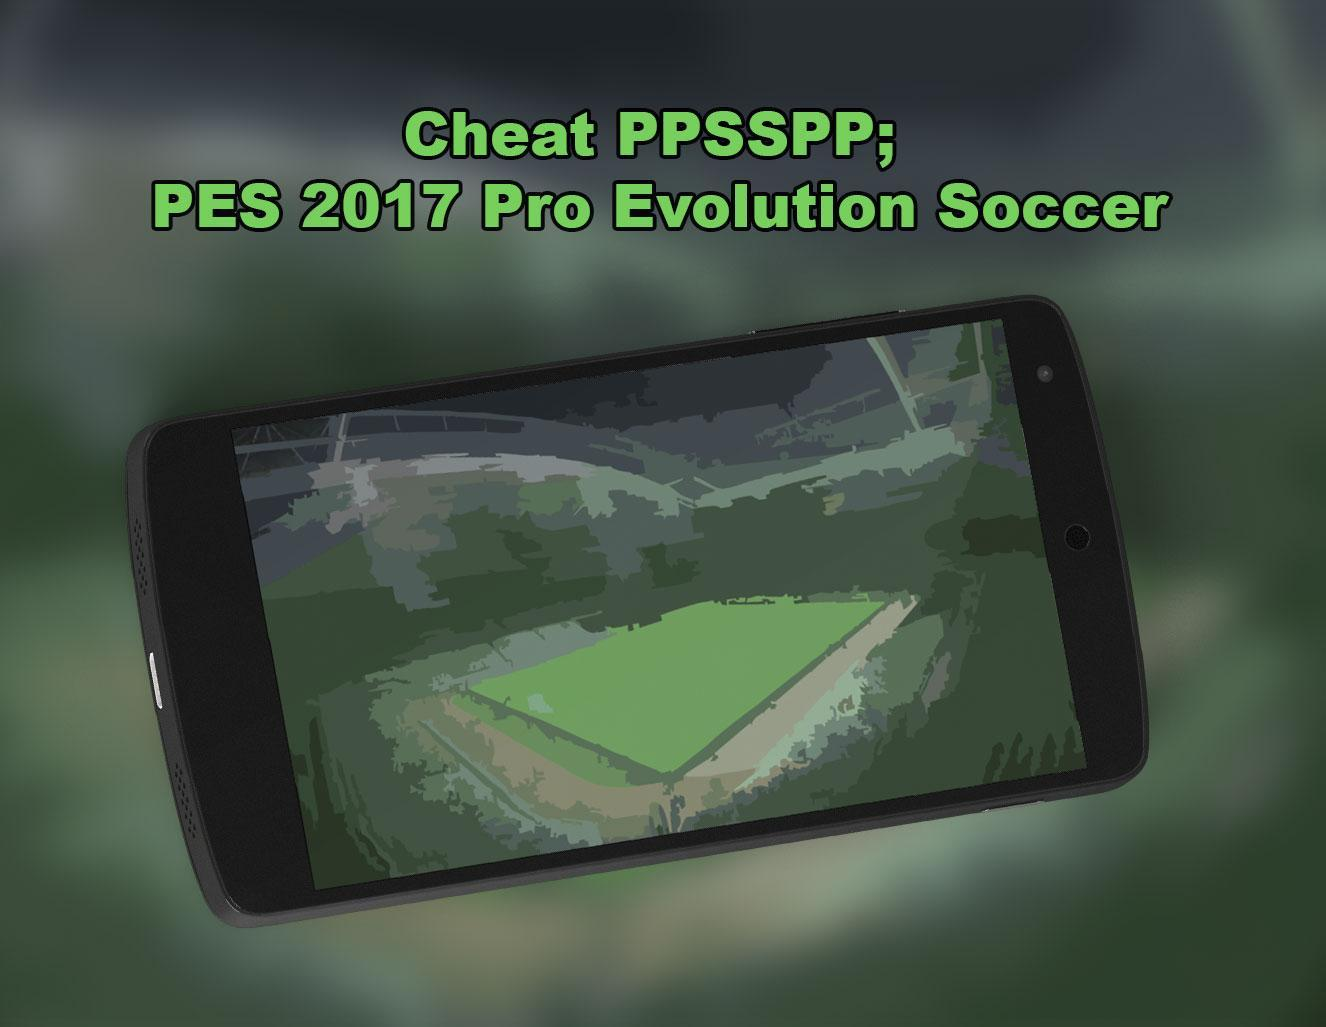 ppsspp cheats android download